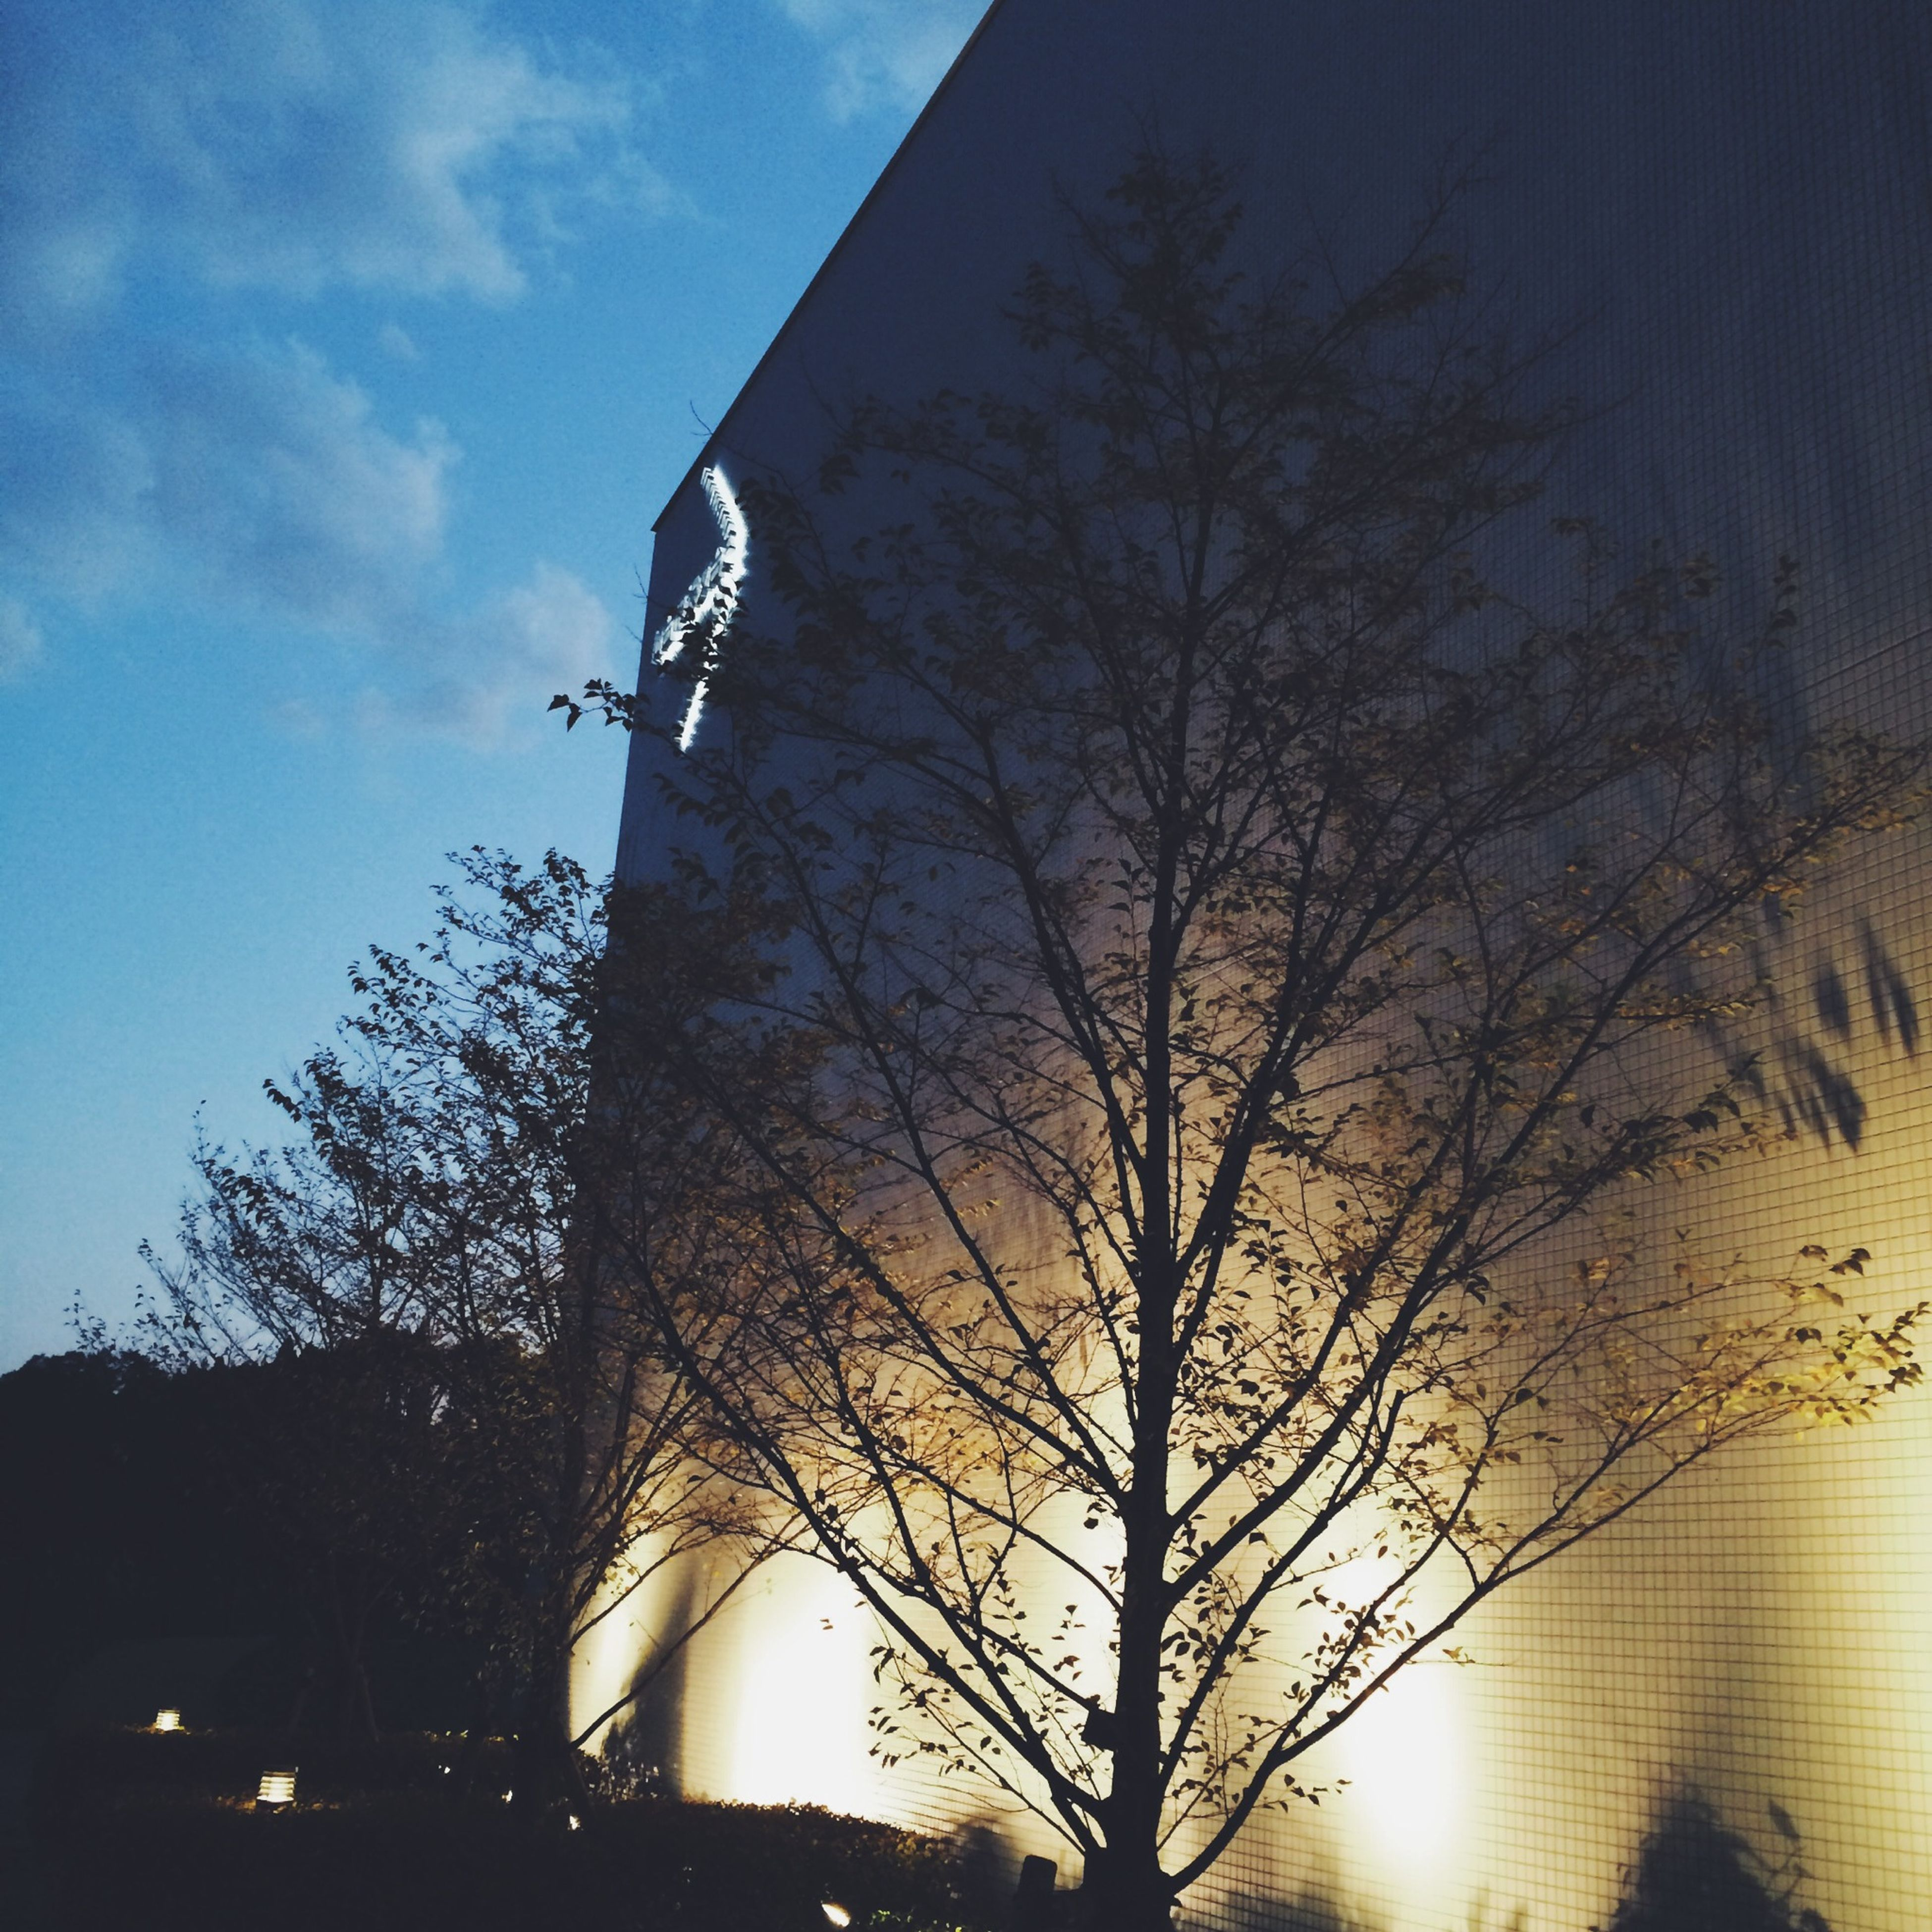 silhouette, tree, low angle view, sunset, sky, bare tree, sun, branch, built structure, architecture, building exterior, sunlight, dusk, nature, cloud - sky, outdoors, sunbeam, no people, back lit, street light